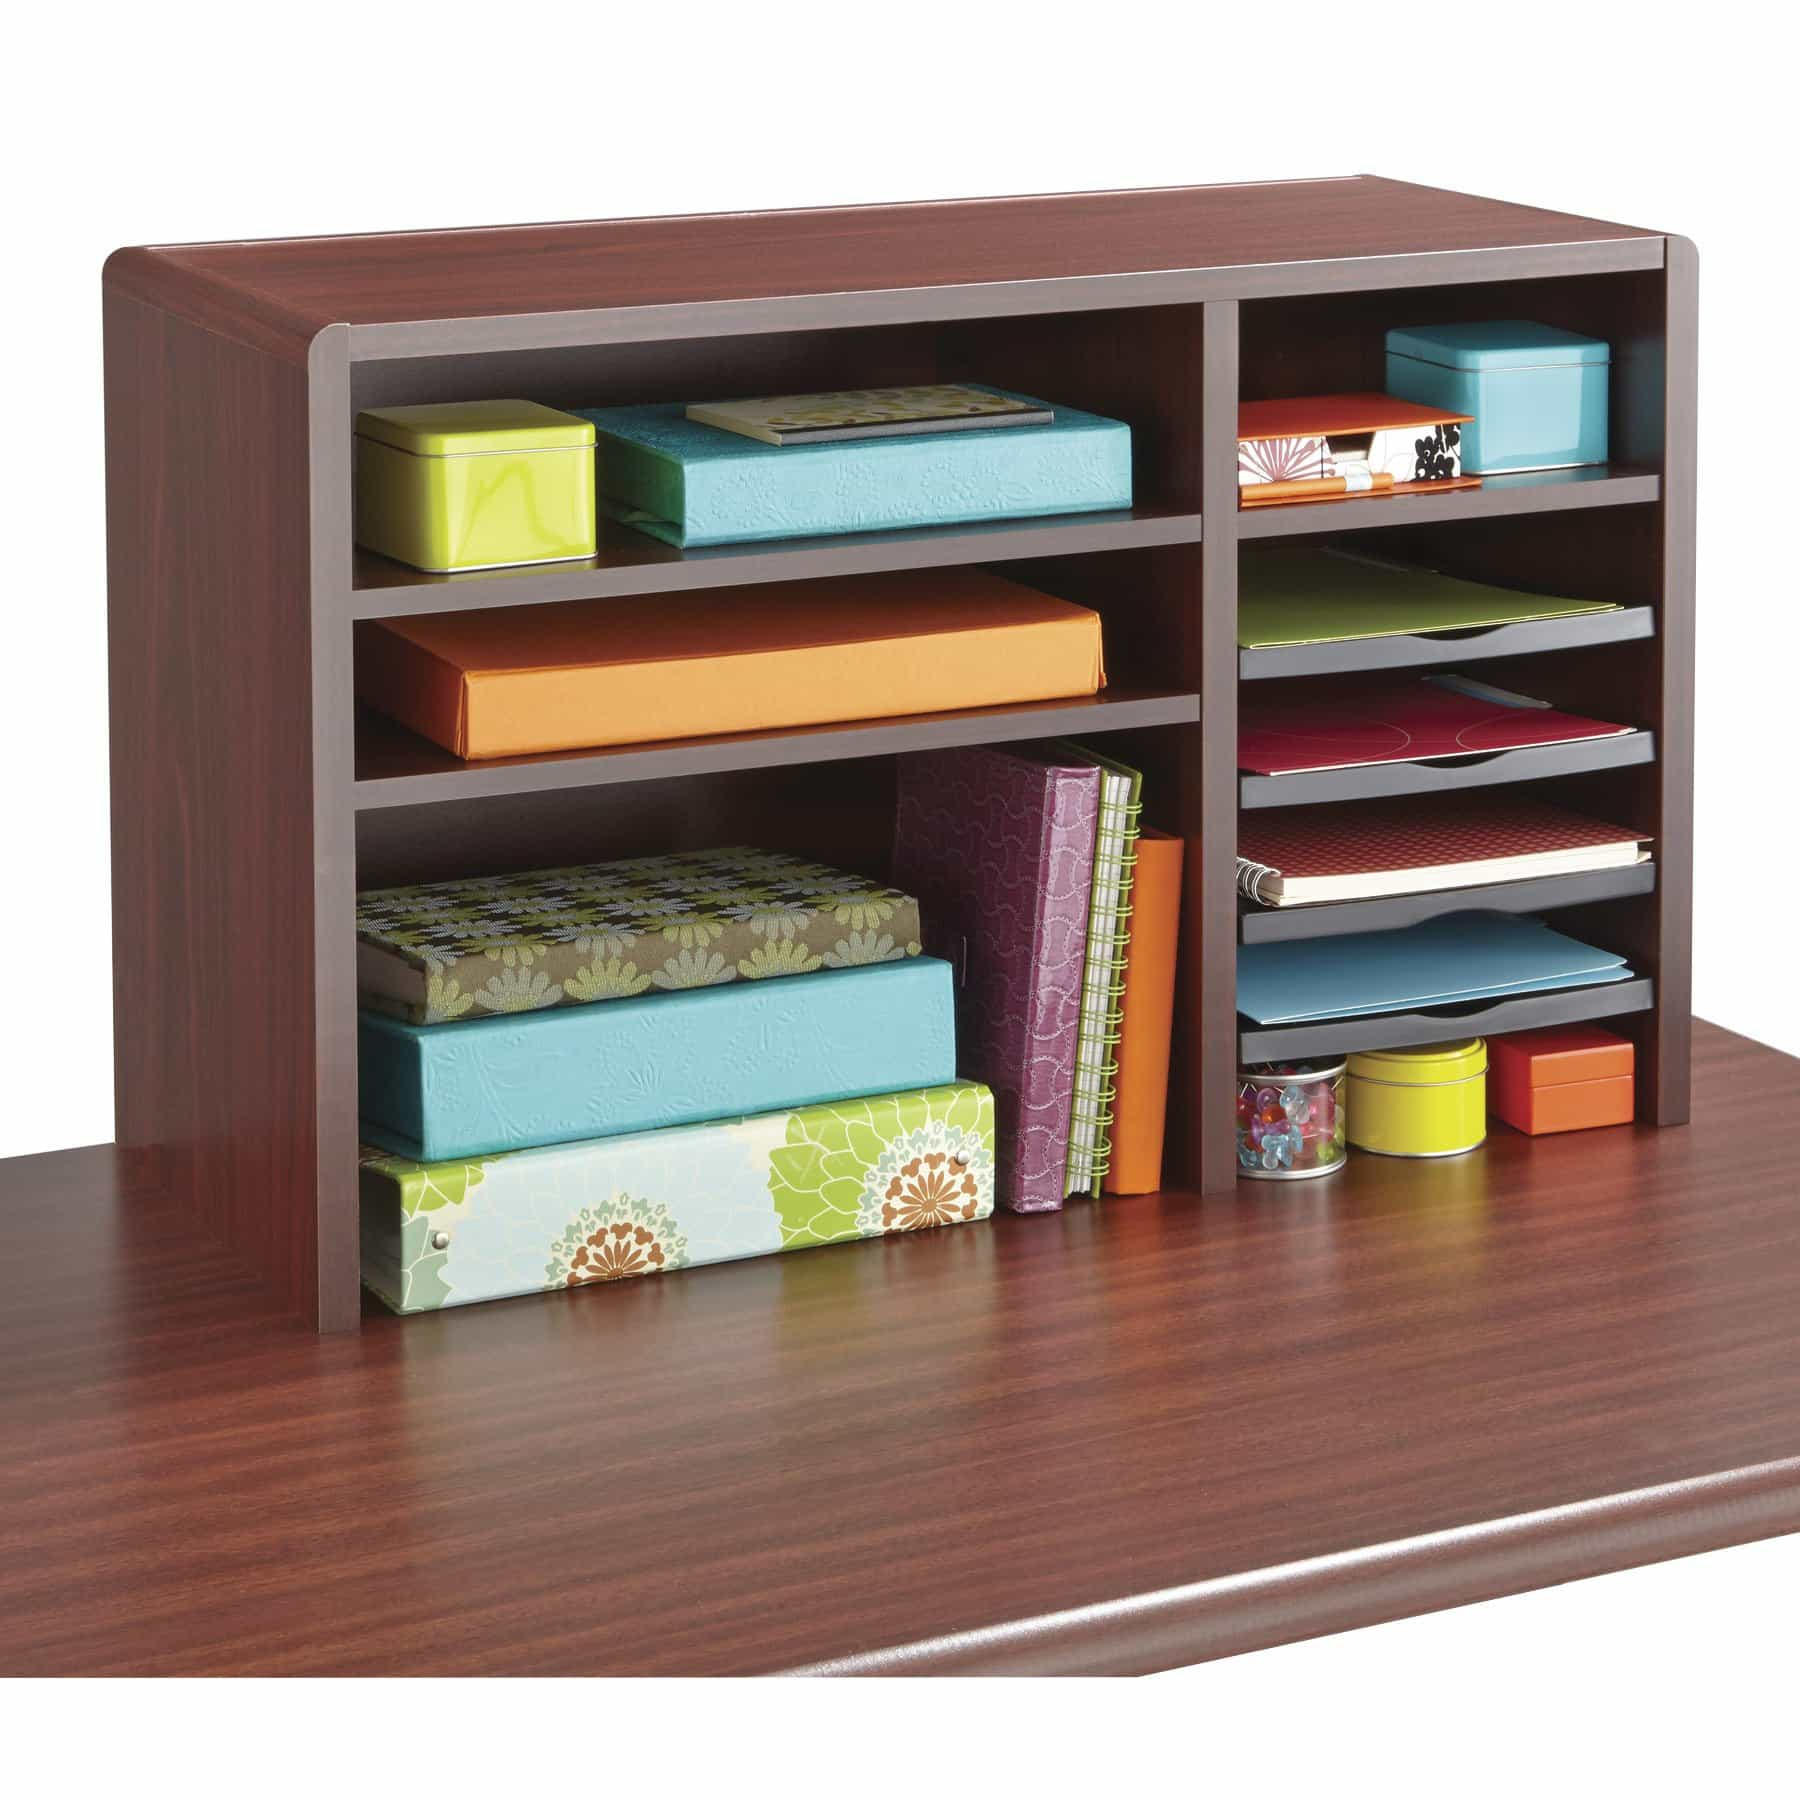 bedinhome - 29 In W Mahogany fixed letter-size shelf & 2 shelves Compact Desk Top Organizer - Safco - Wood Desktop Organizers